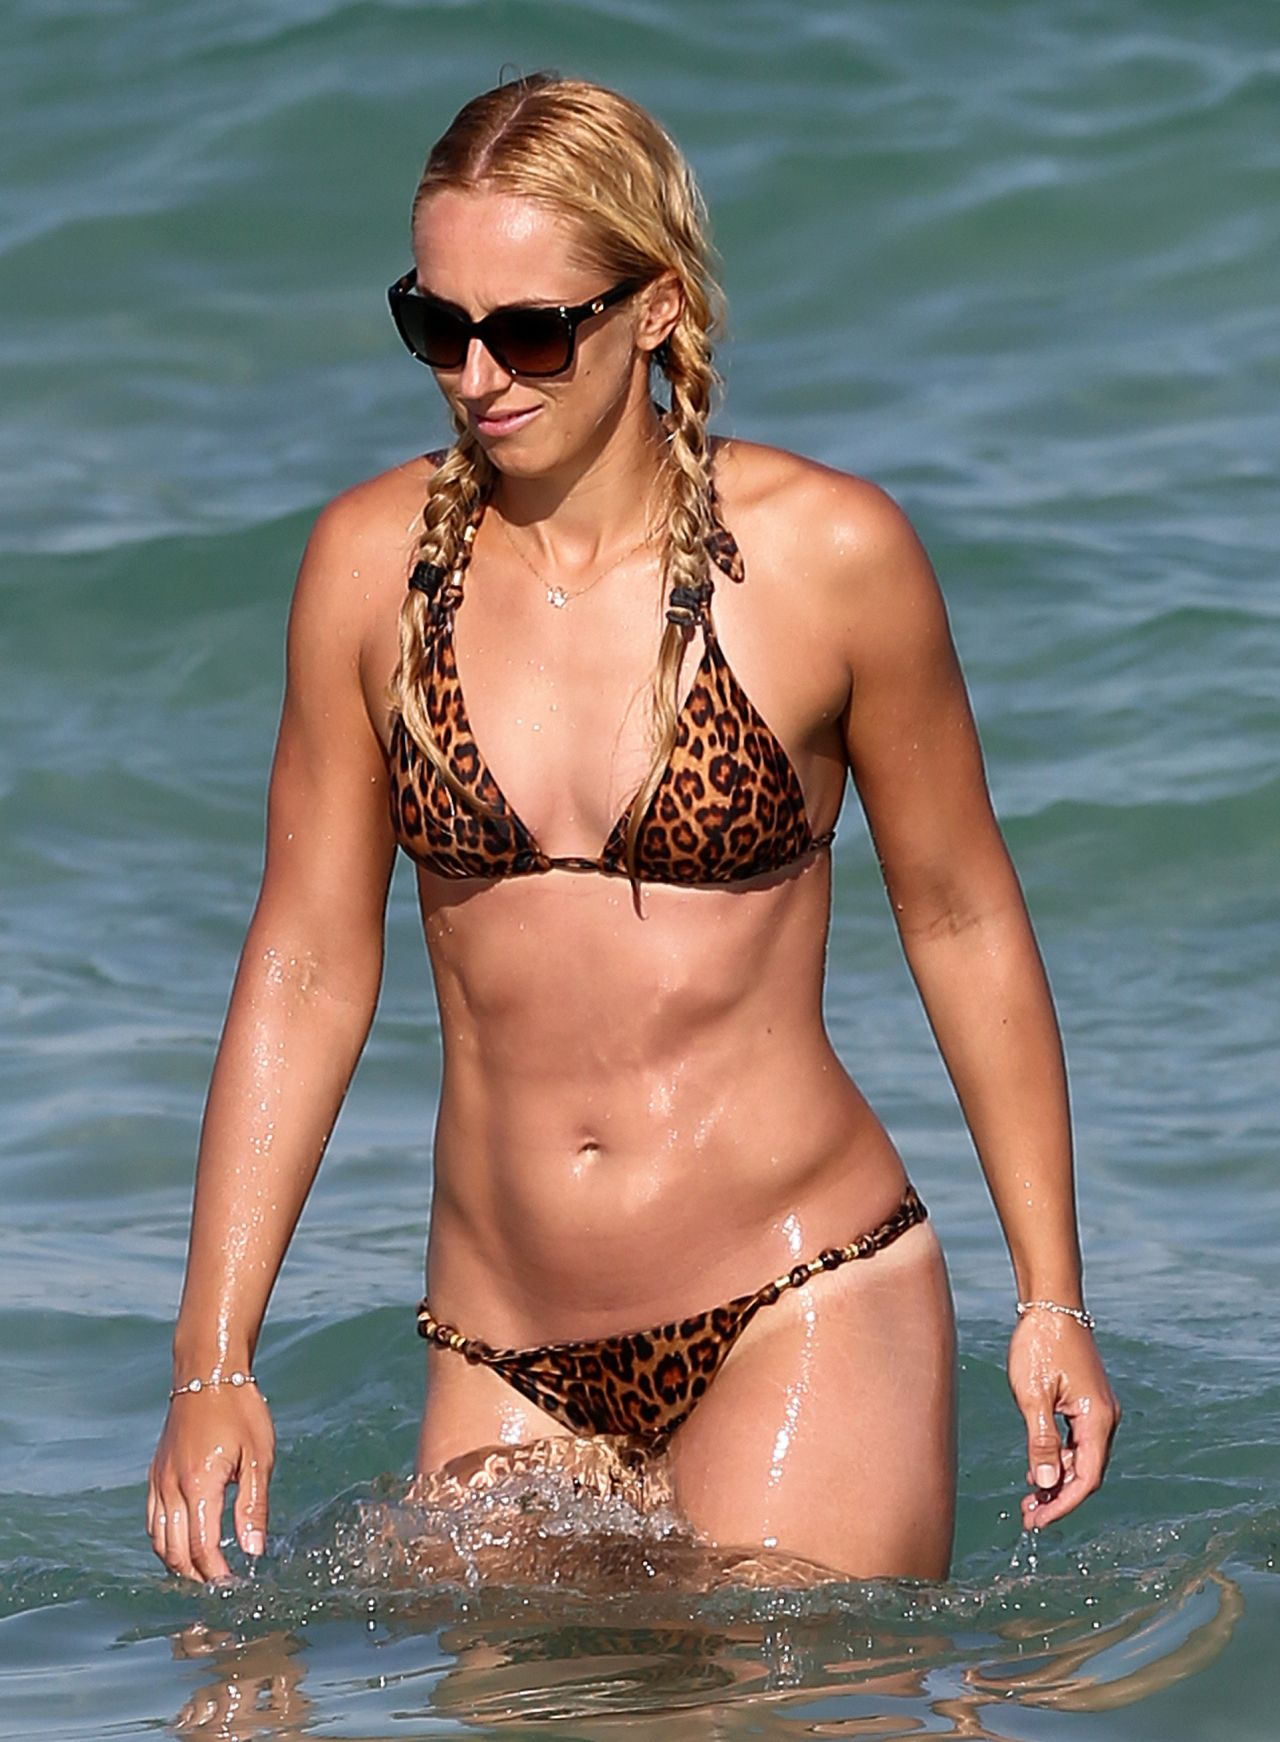 Sabine Lisicki In Leopard Print Bikini On The Beach In -8695